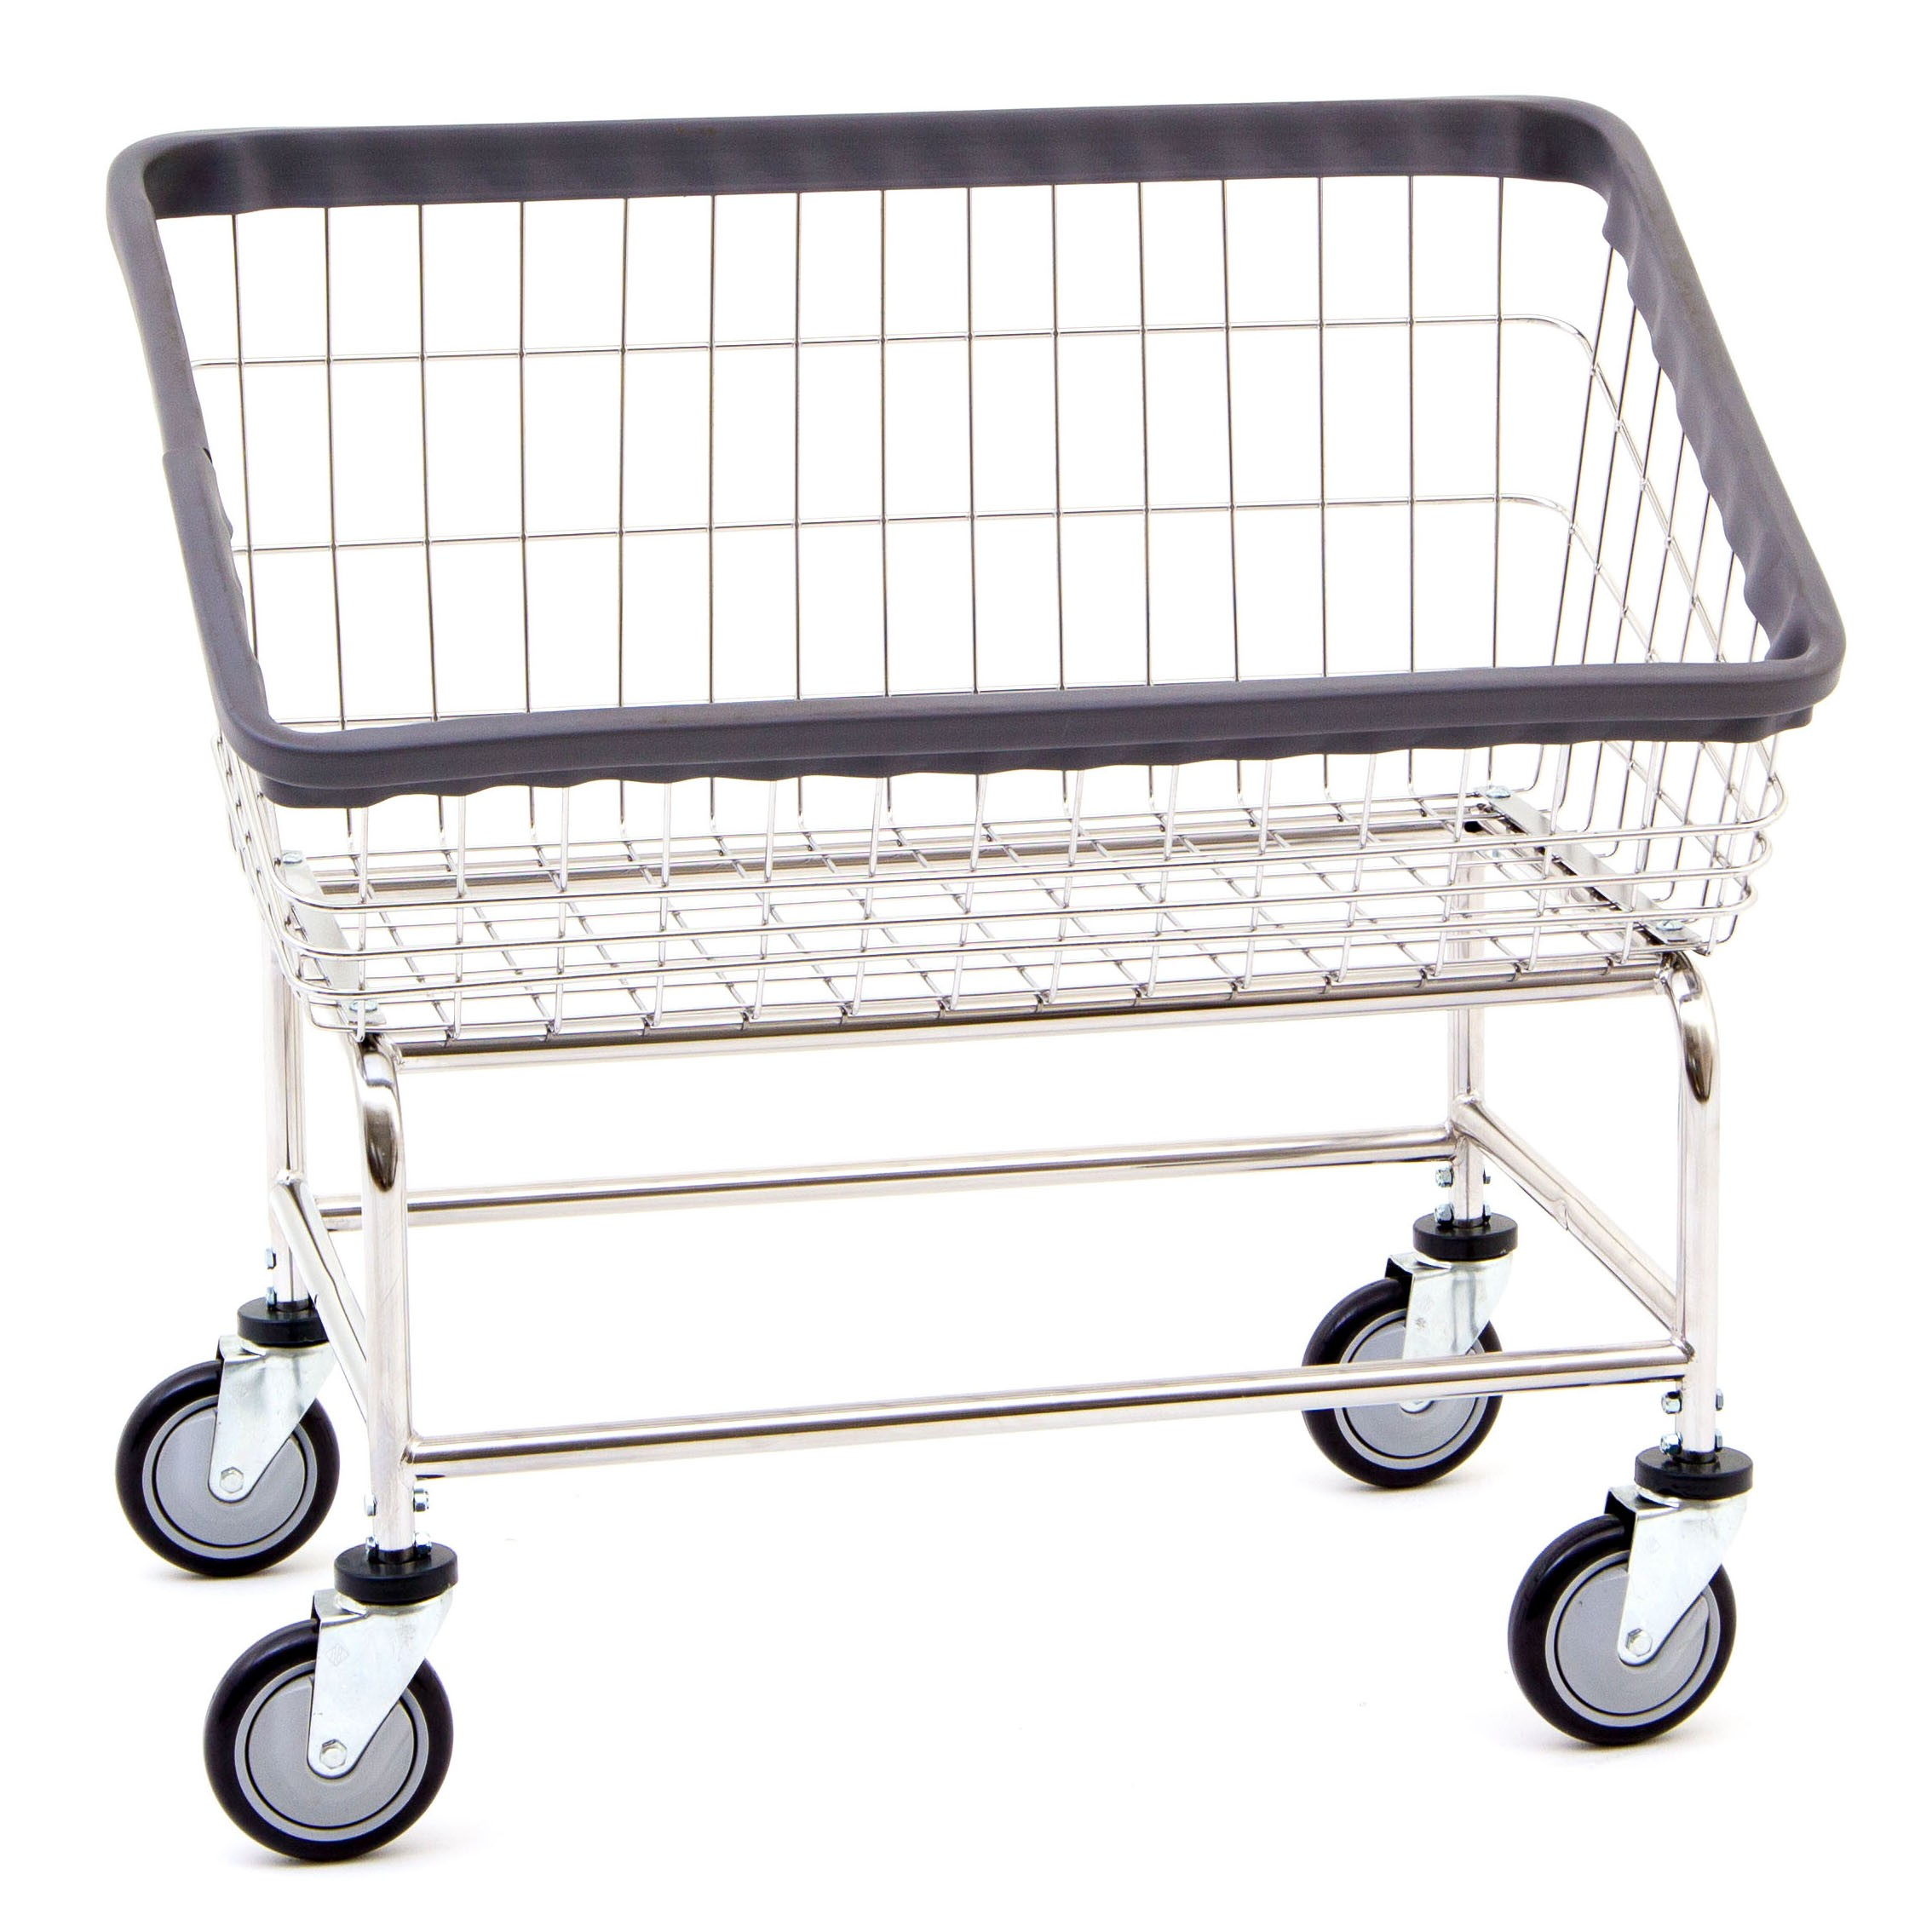 Large Capacity Laundry Cart 200S